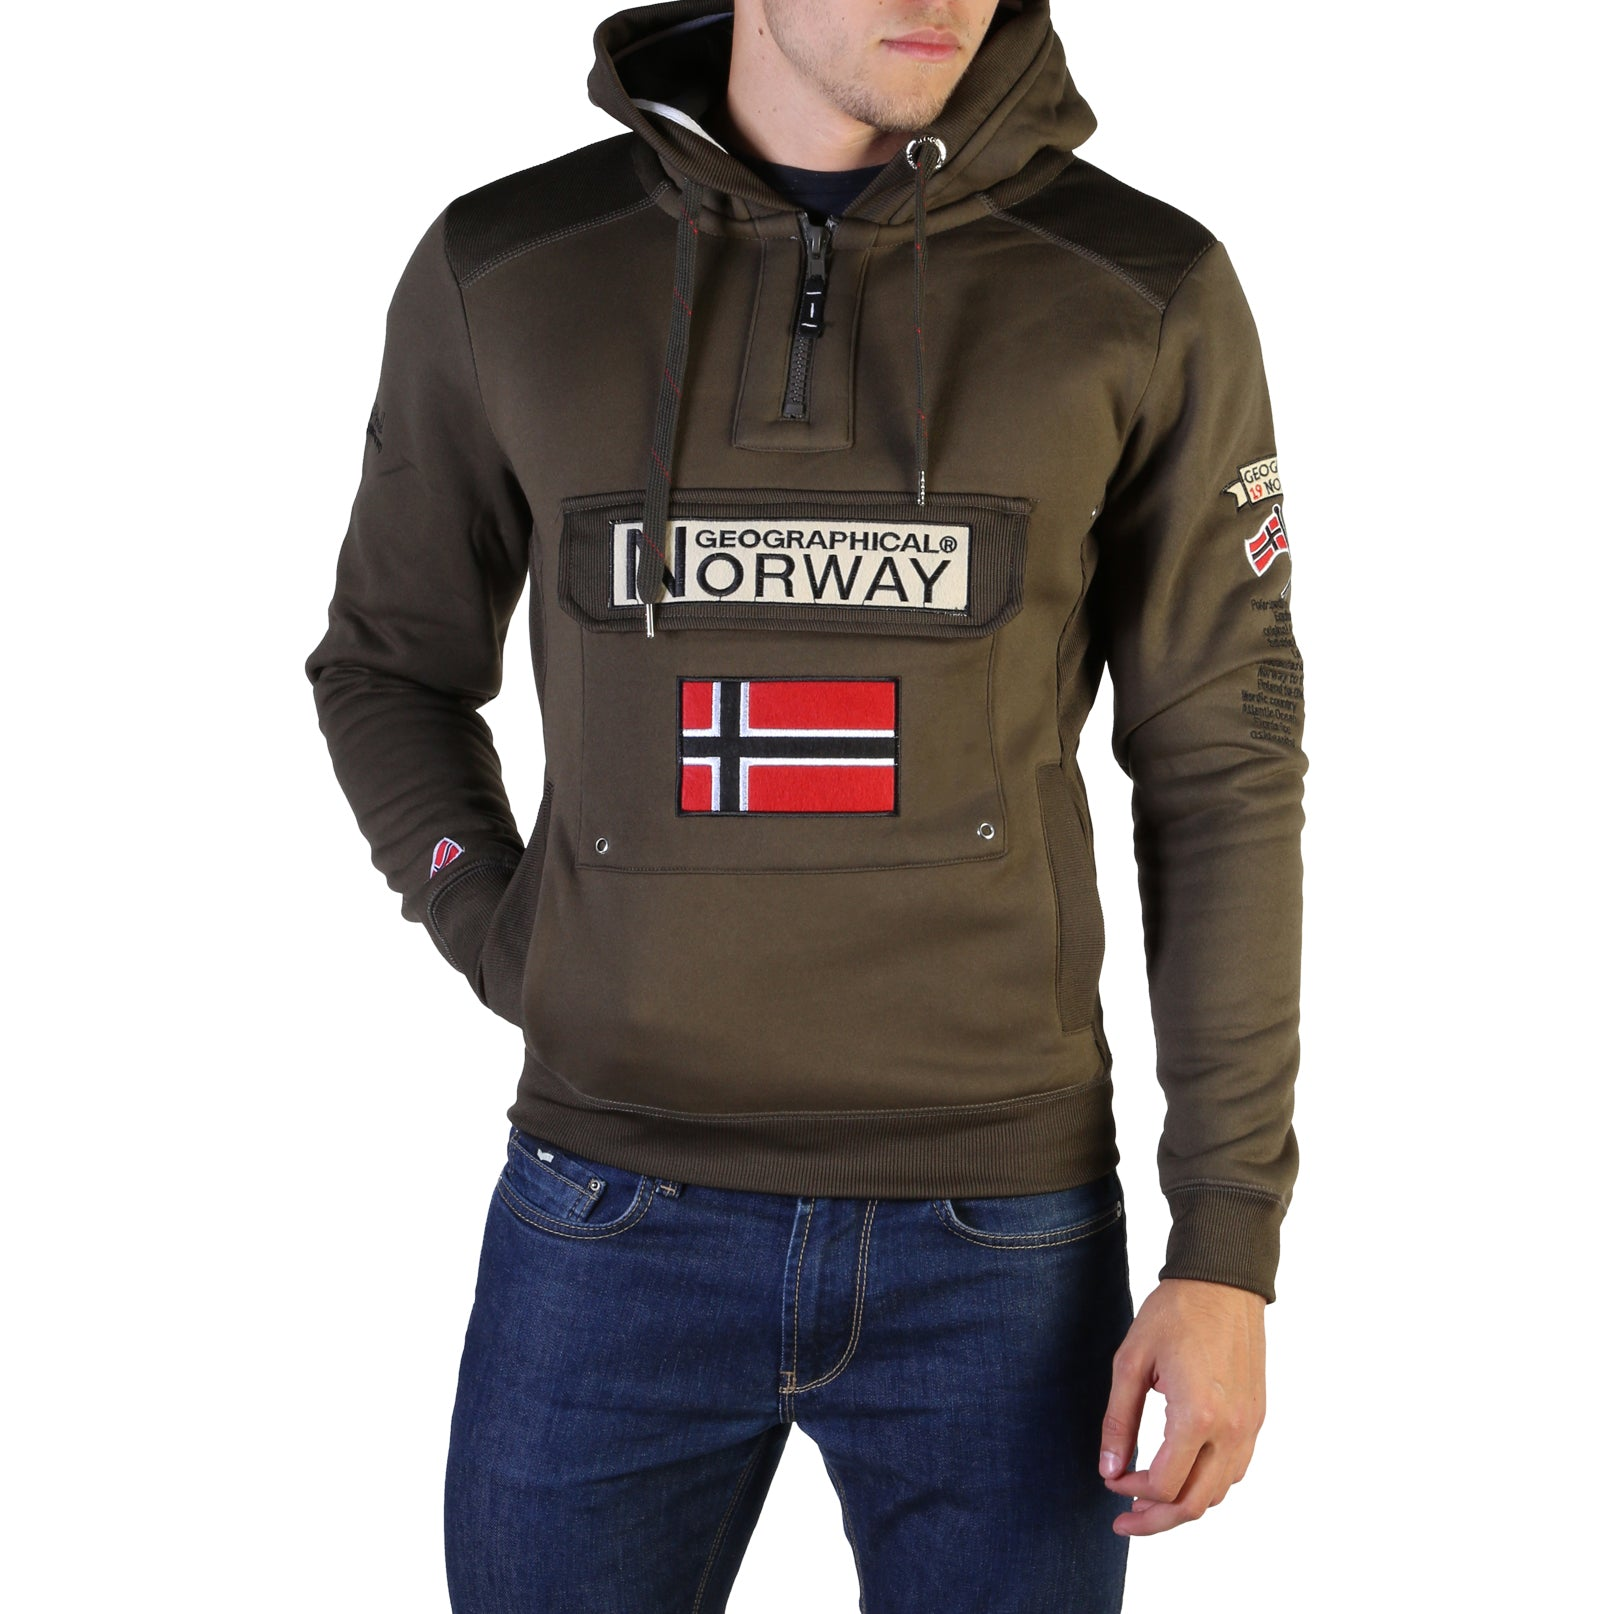 Abbigliamento Felpe Geographical Norway - Gymclass007_man Marche Famose